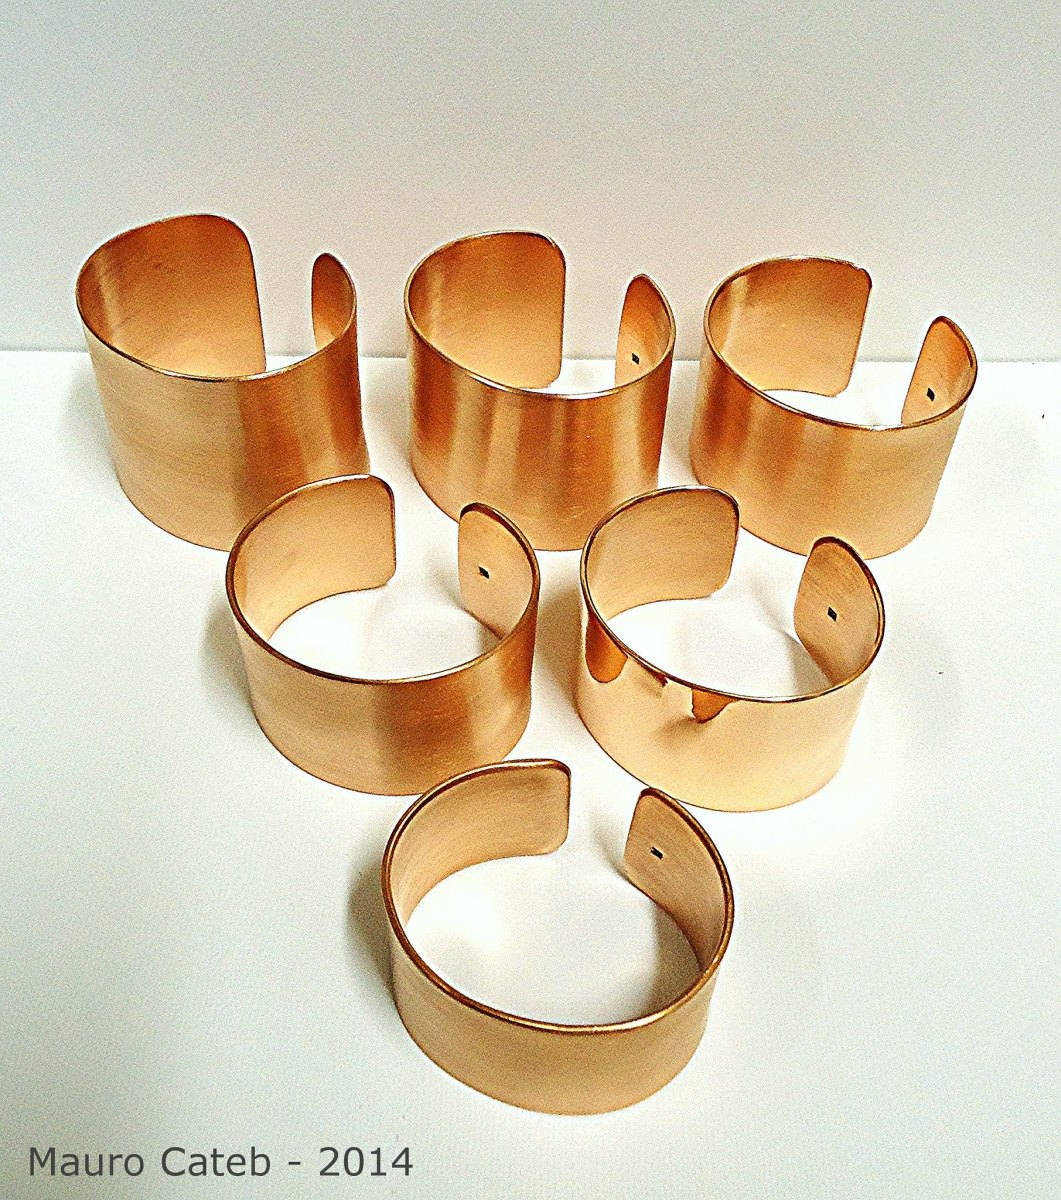 Copper bracelets are often used to ease aches, pains and inflammation.